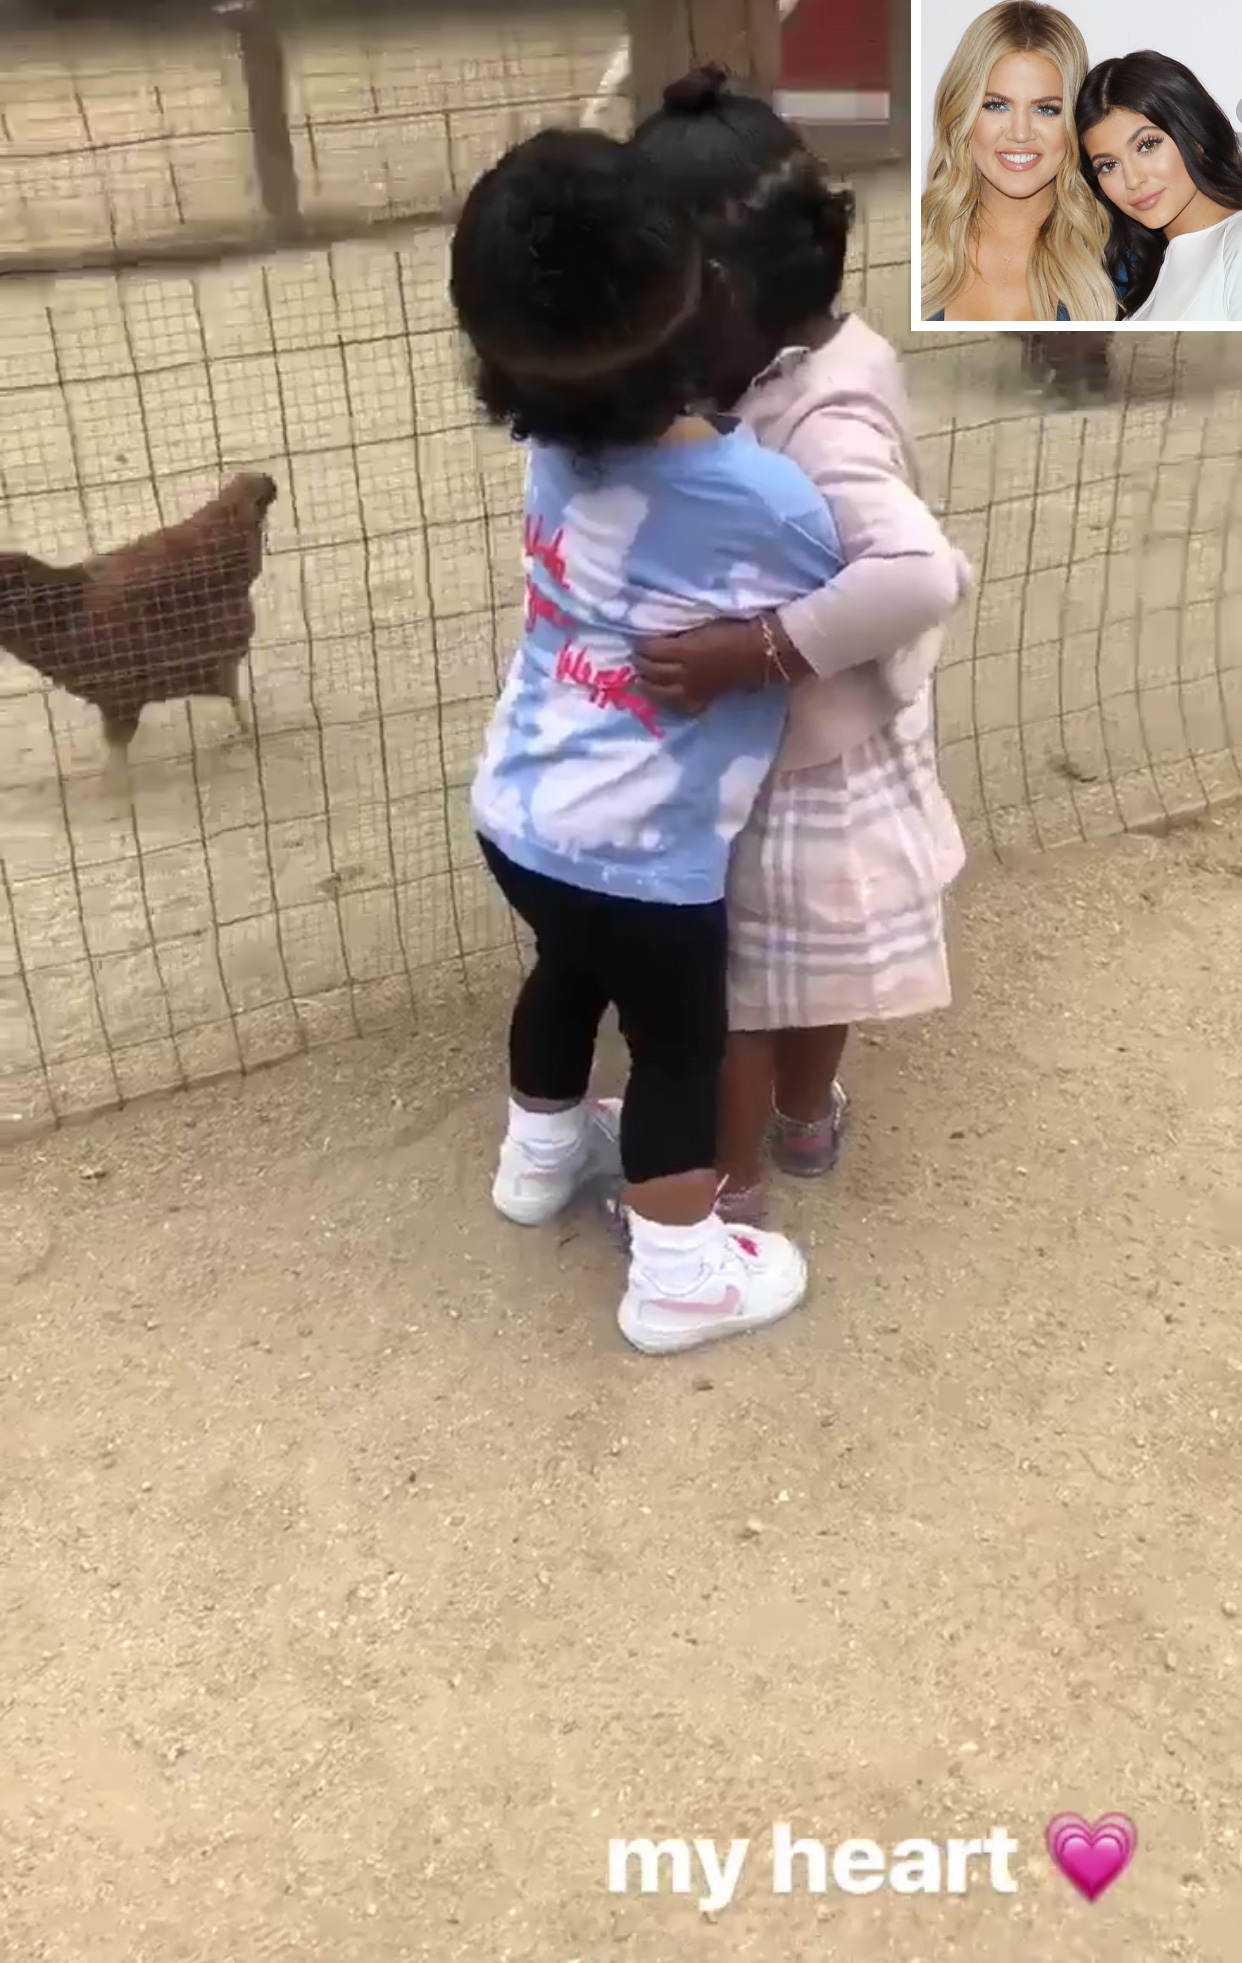 Kylie Jenner and Khloé Kardashian Share Sweet Footage of Cousins Stormi and True at a Farm